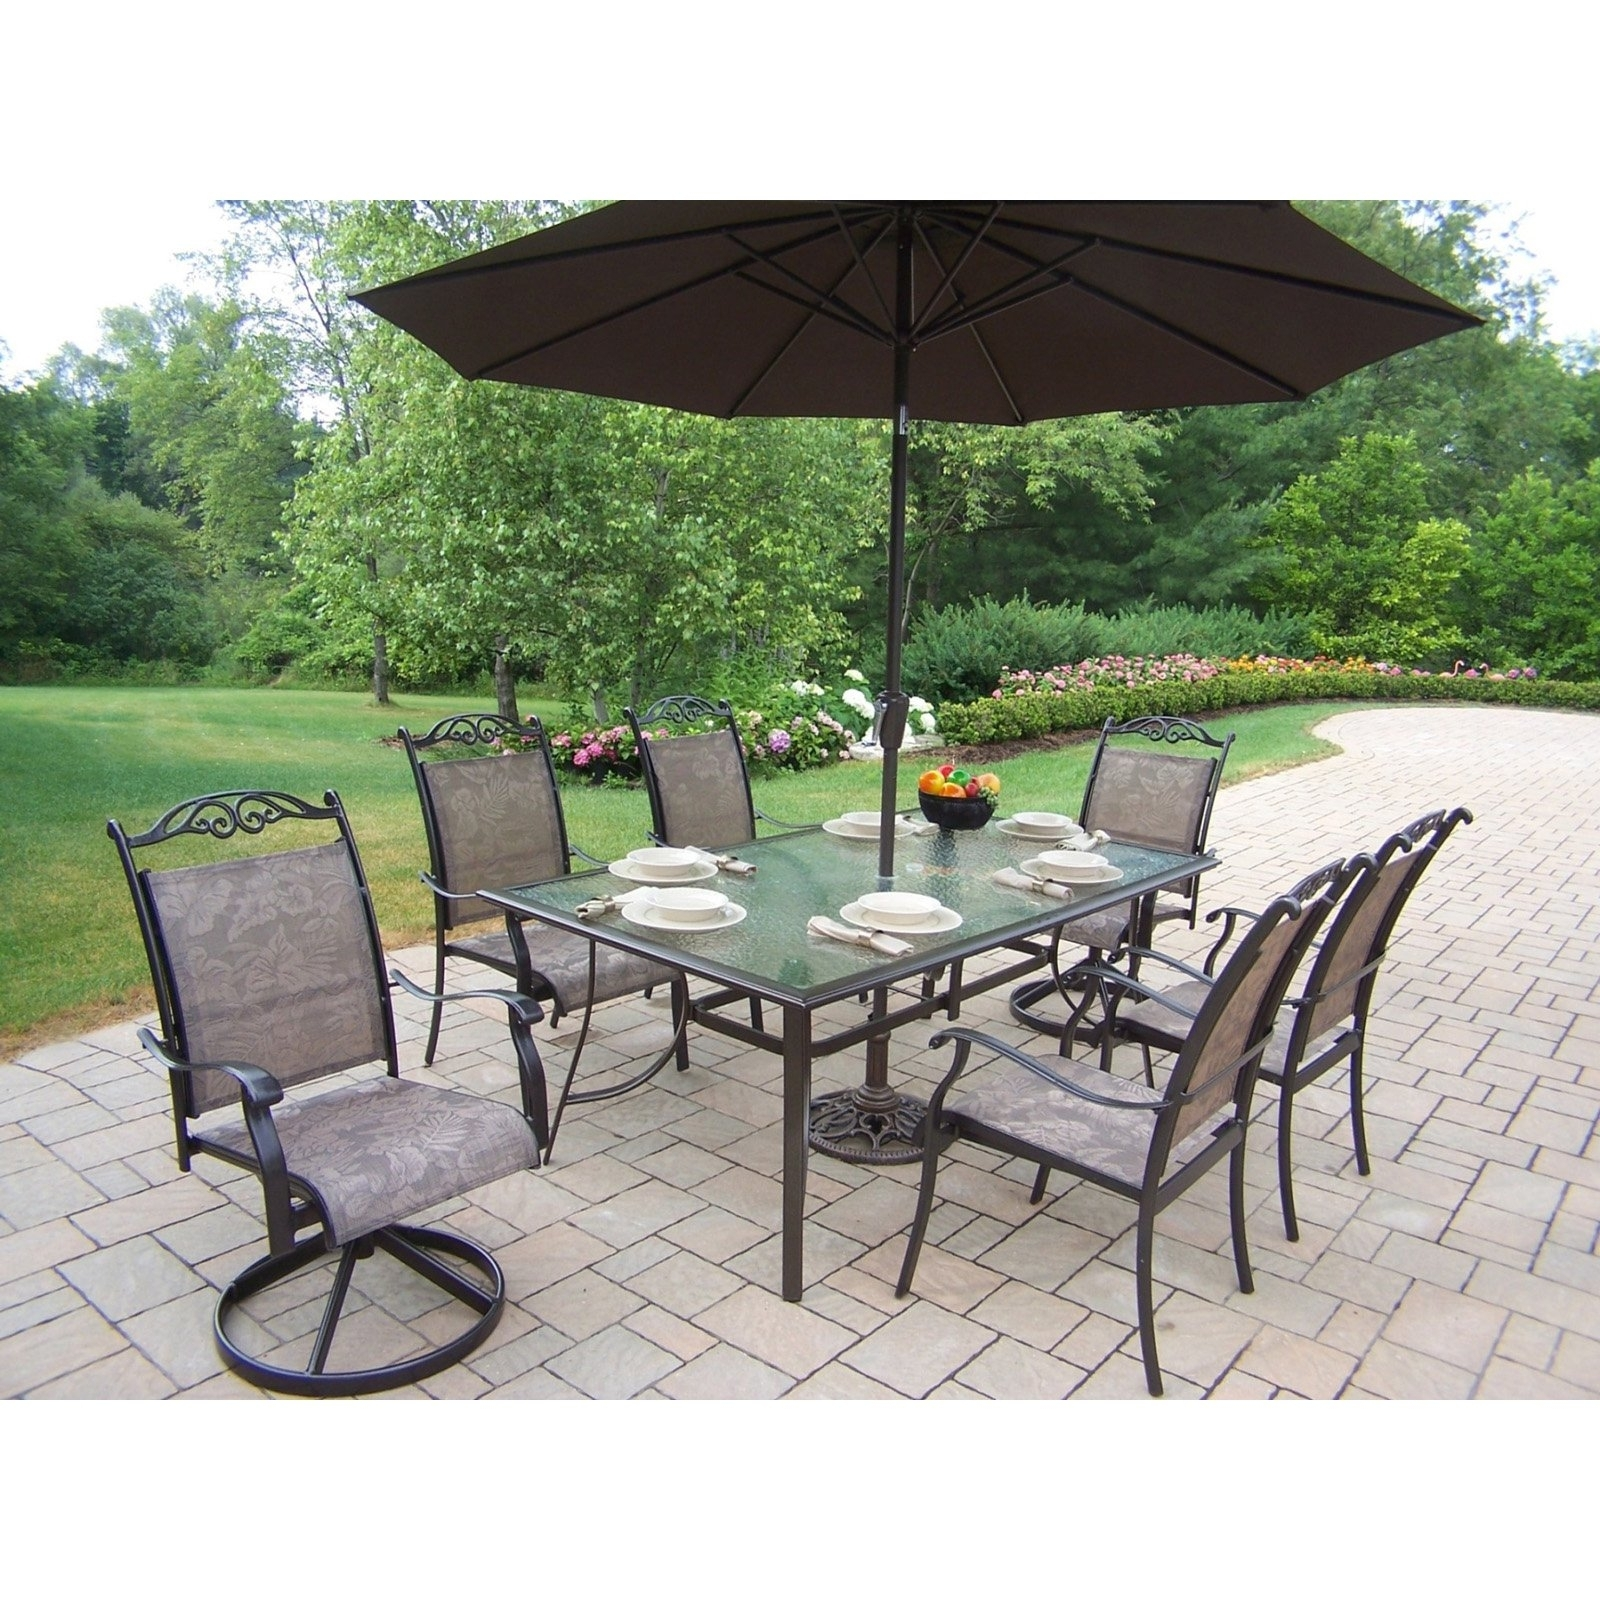 Outdoor Dining Sets With Umbrella Furniture Modern Round Patio Ideas With Latest Patio Dining Umbrellas (View 7 of 20)